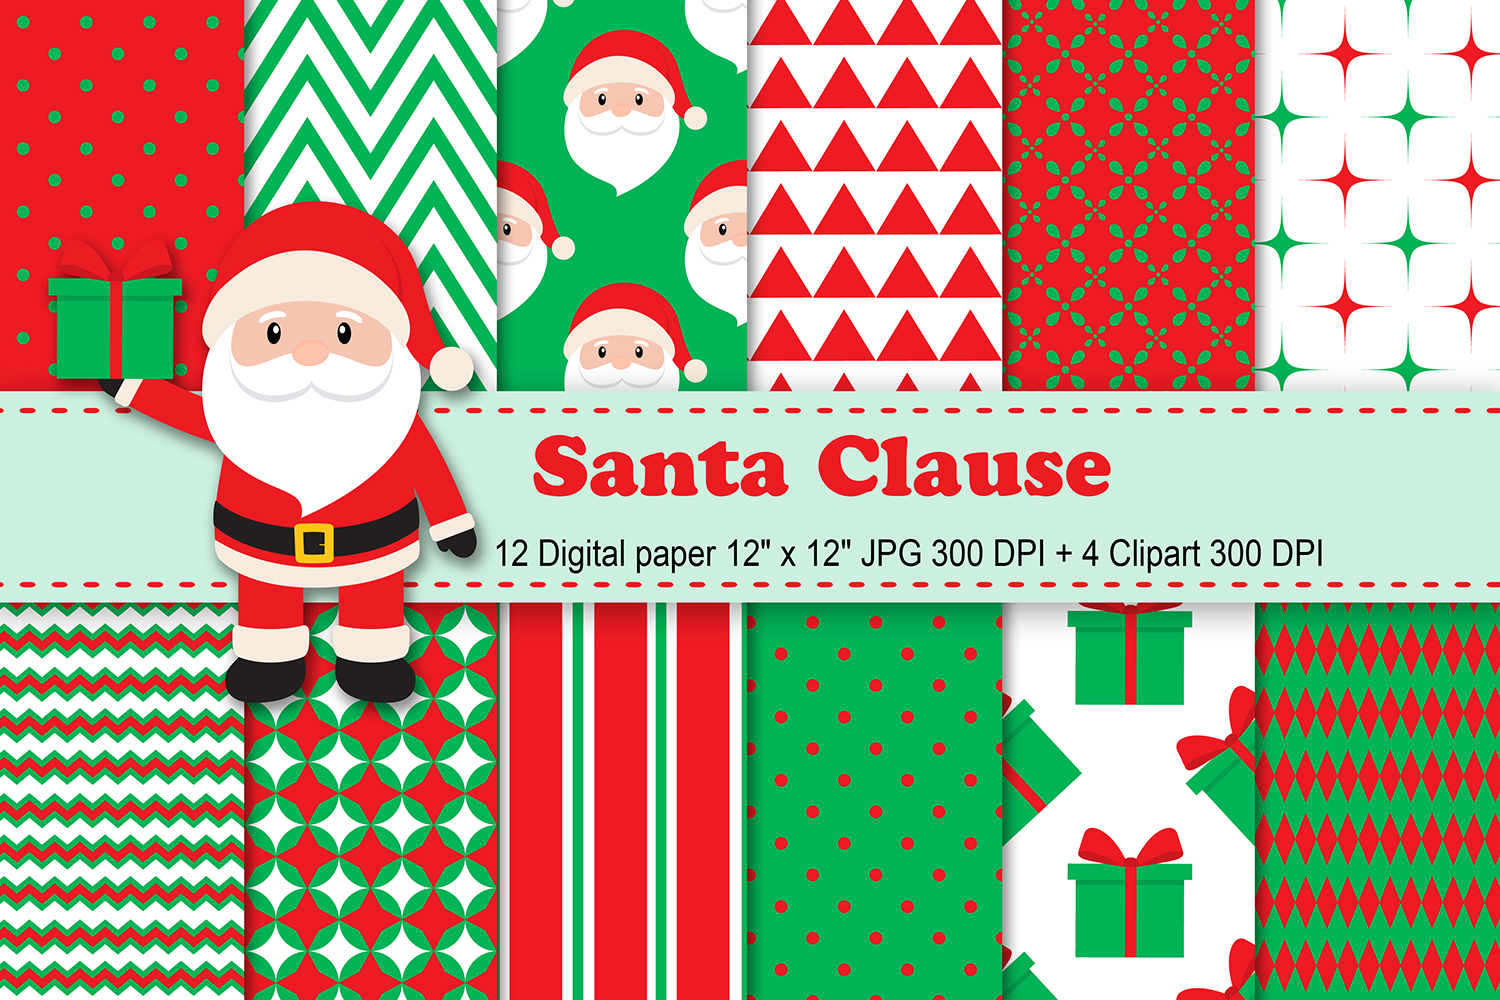 Download Free Santa Clause Digital Paper Graphic By Cosmosfineart Creative for Cricut Explore, Silhouette and other cutting machines.